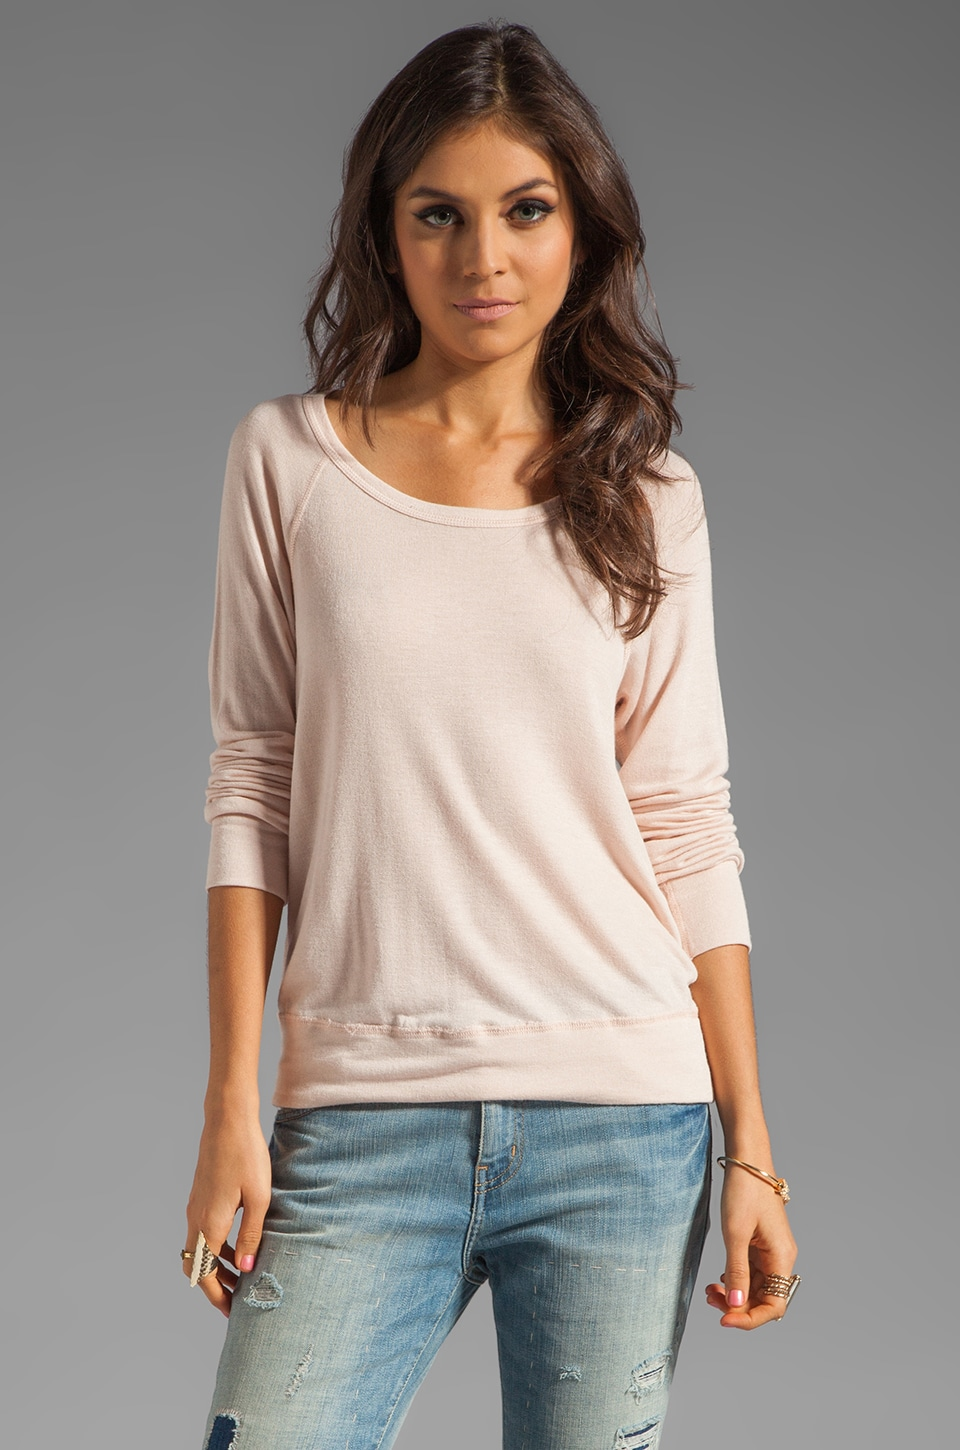 TEXTILE Elizabeth and James Perfect Sweatshirt in Blush